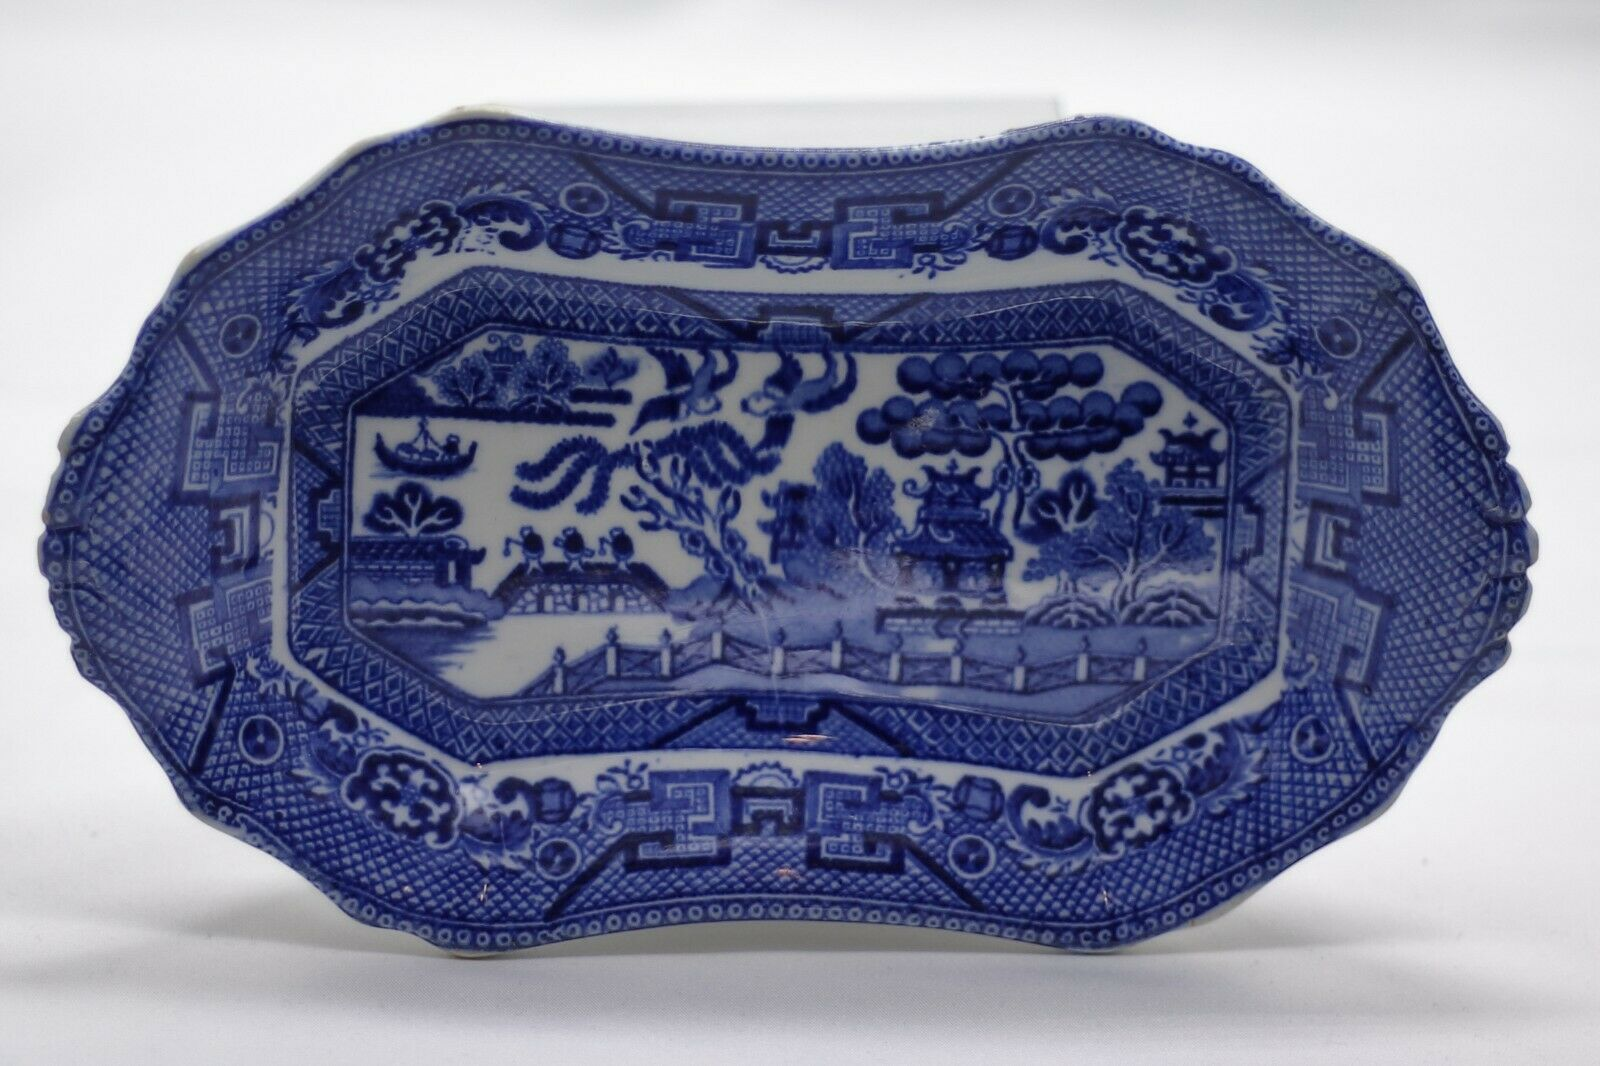 Allertons Blue Willow Relish Plate / Butter Plate England Vintage RARE  - $68.00